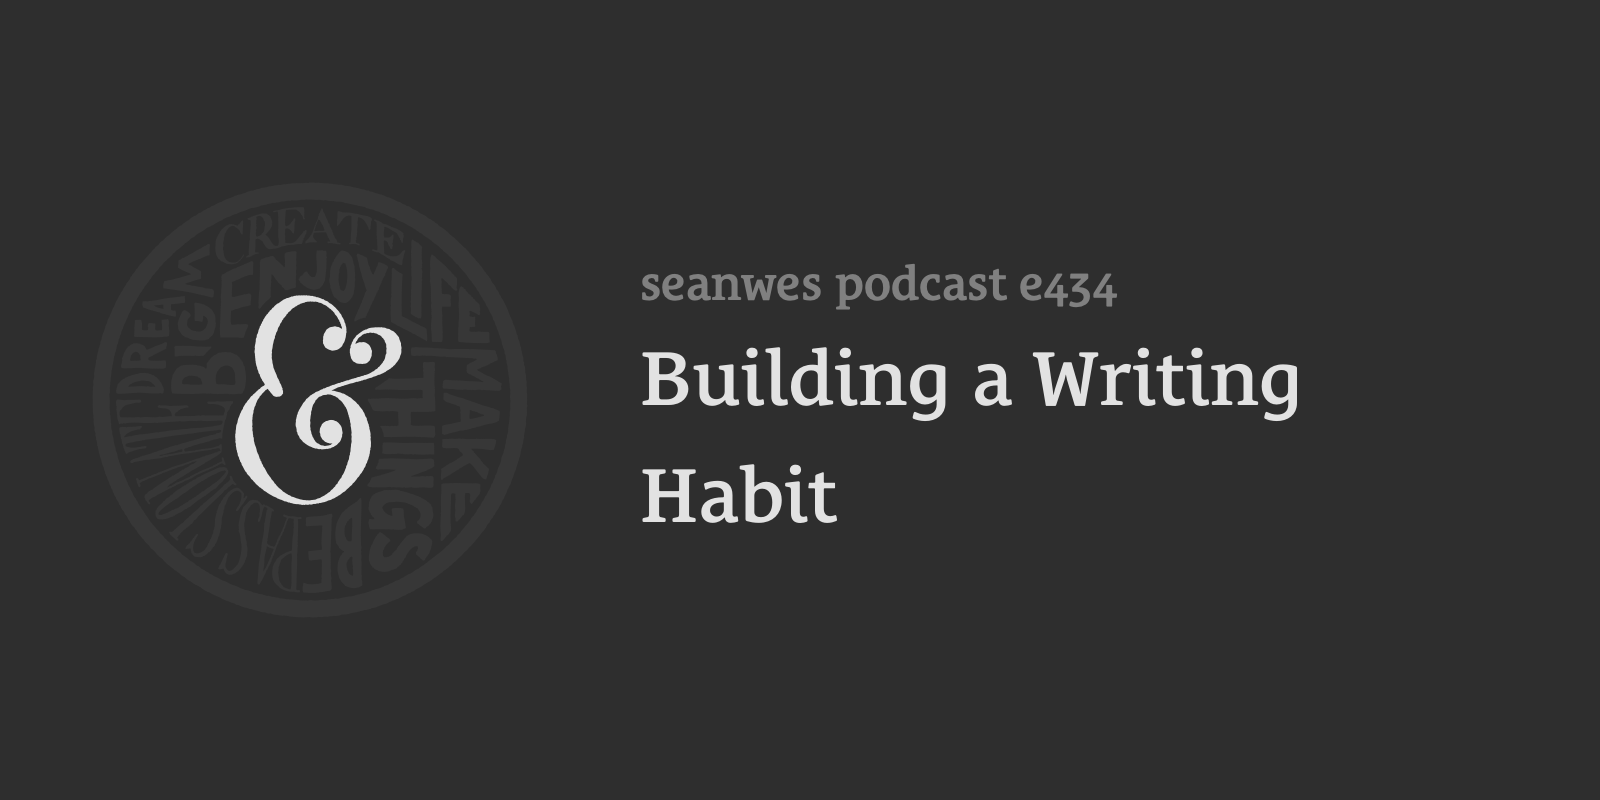 seanwes podcast: Building a Writing Habit